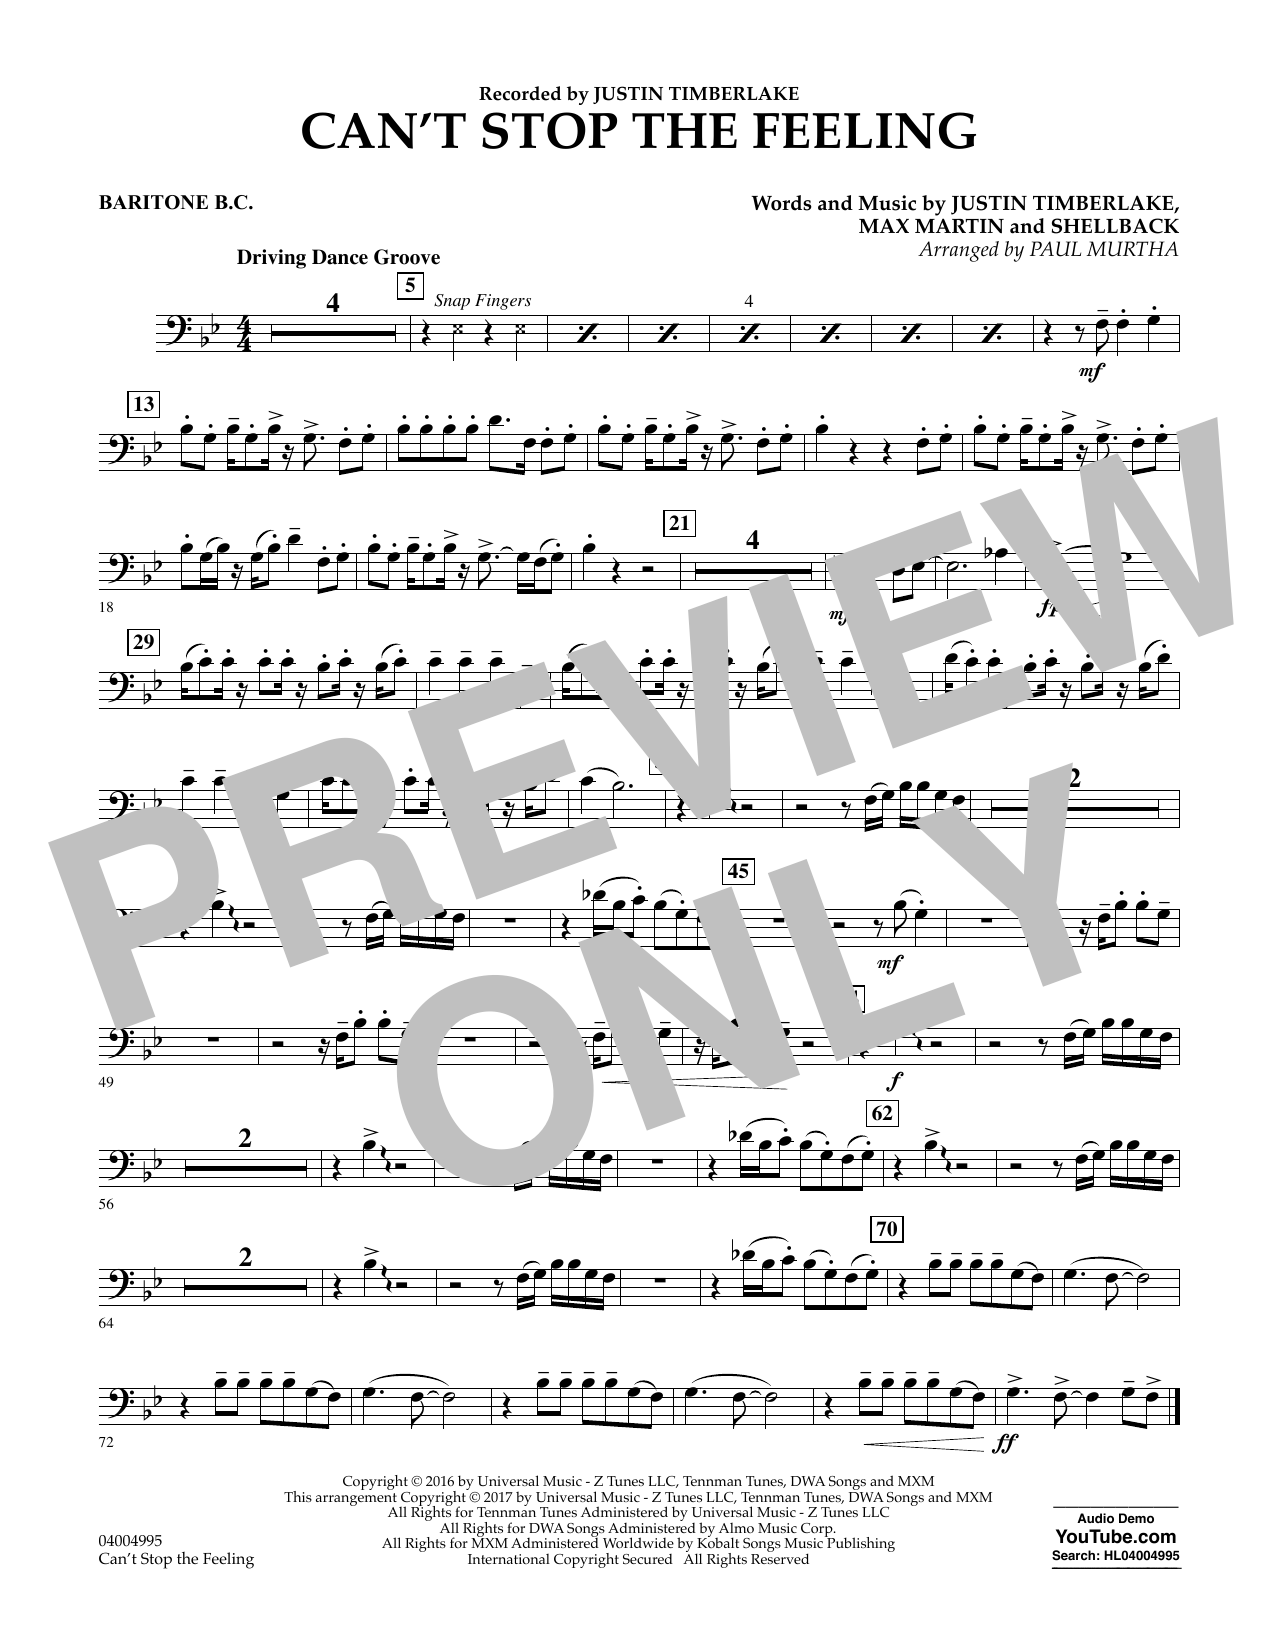 Can't Stop the Feeling - Baritone B.C. Sheet Music